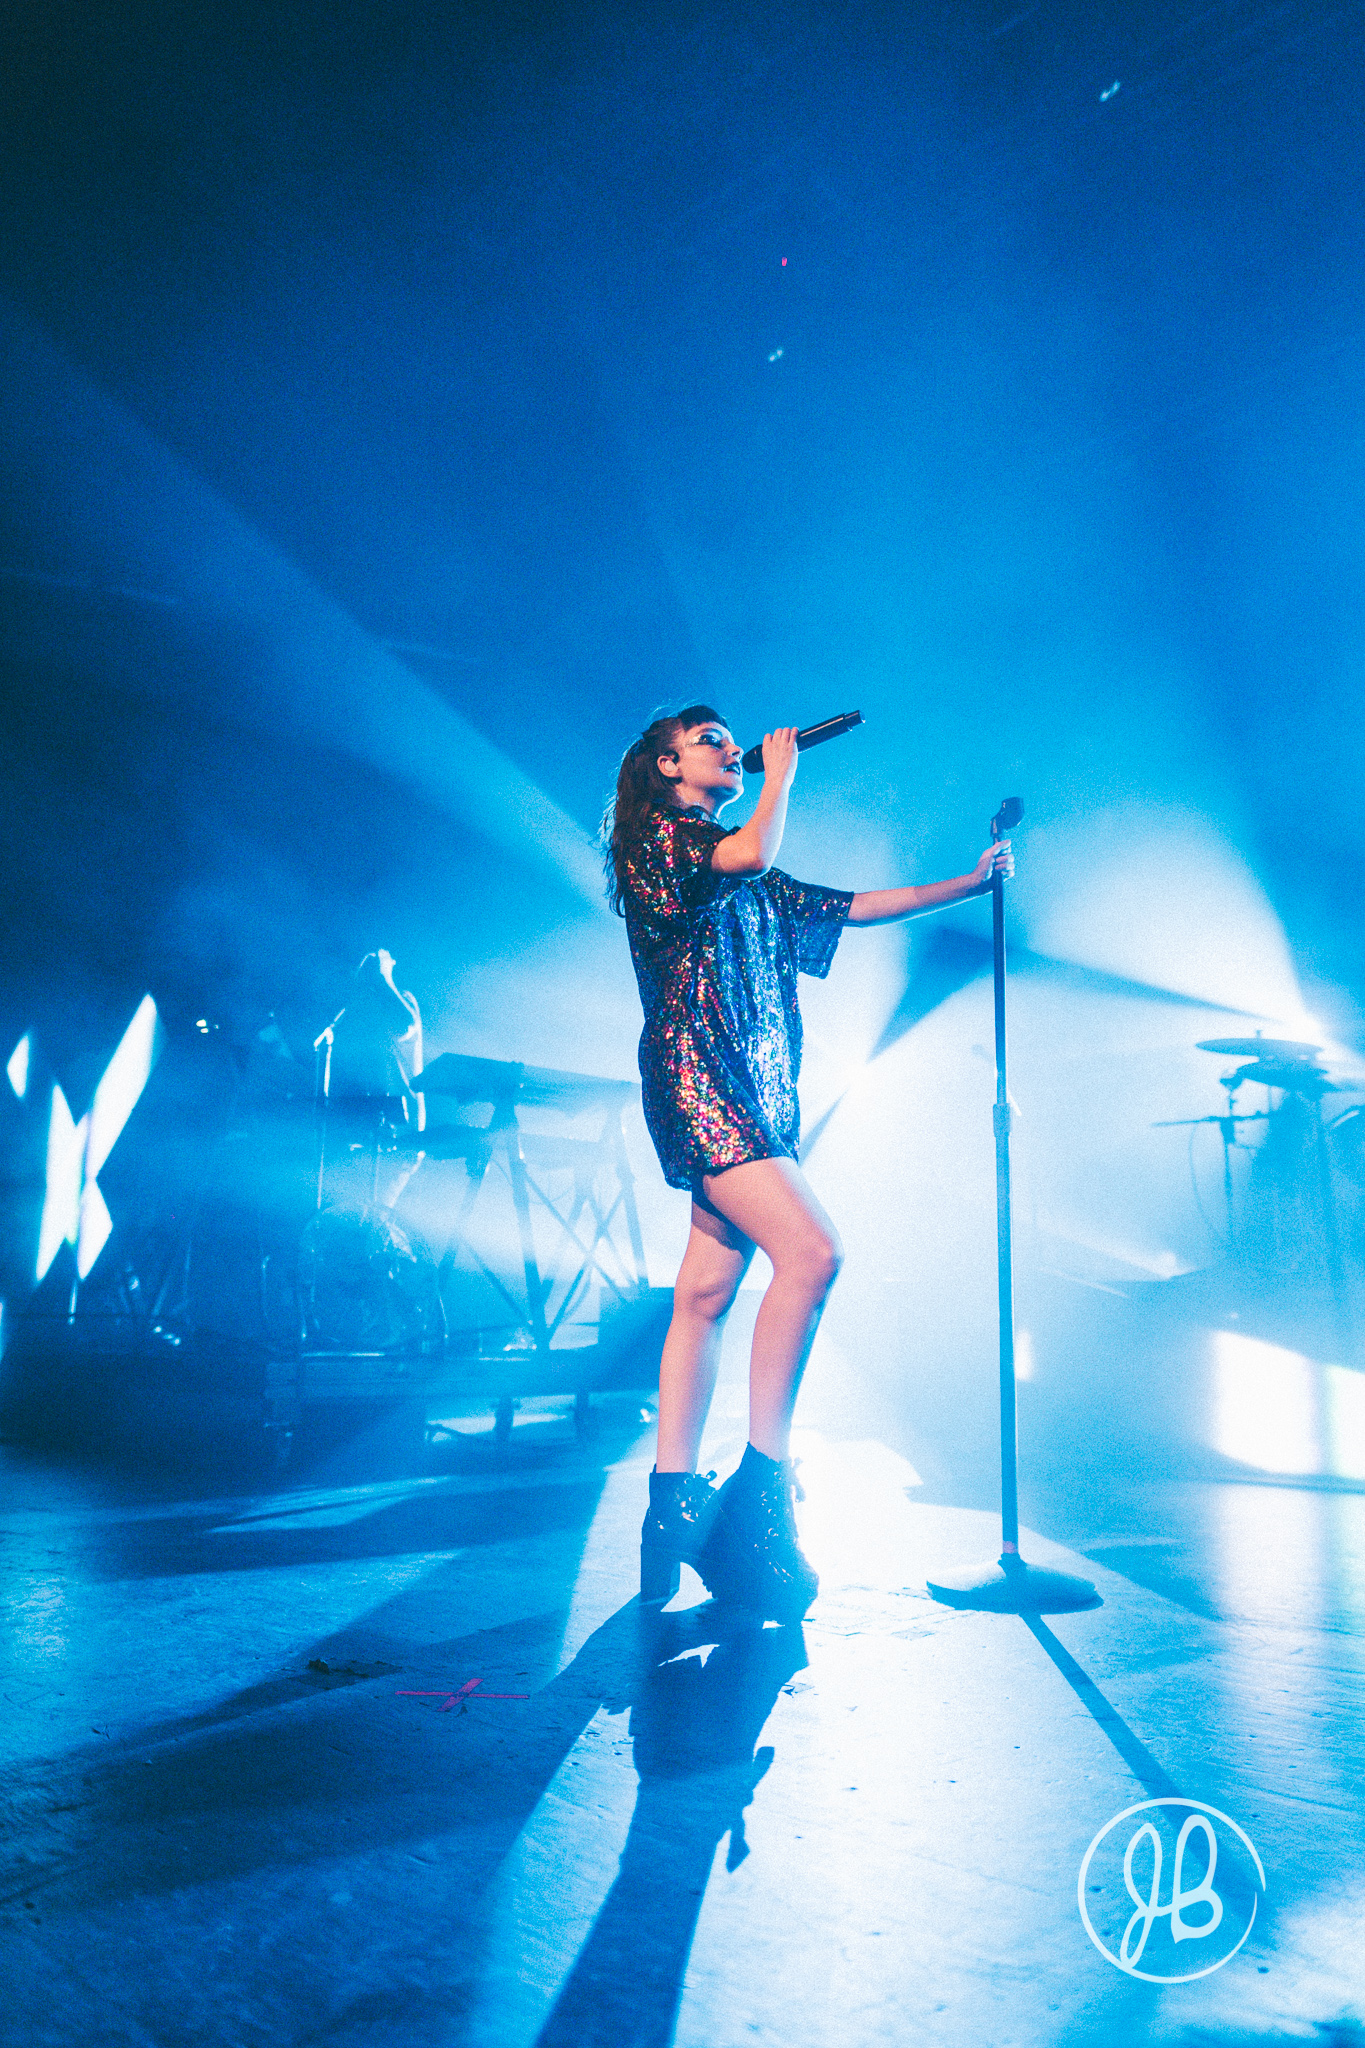 Chvrches-Acentric-38.jpg